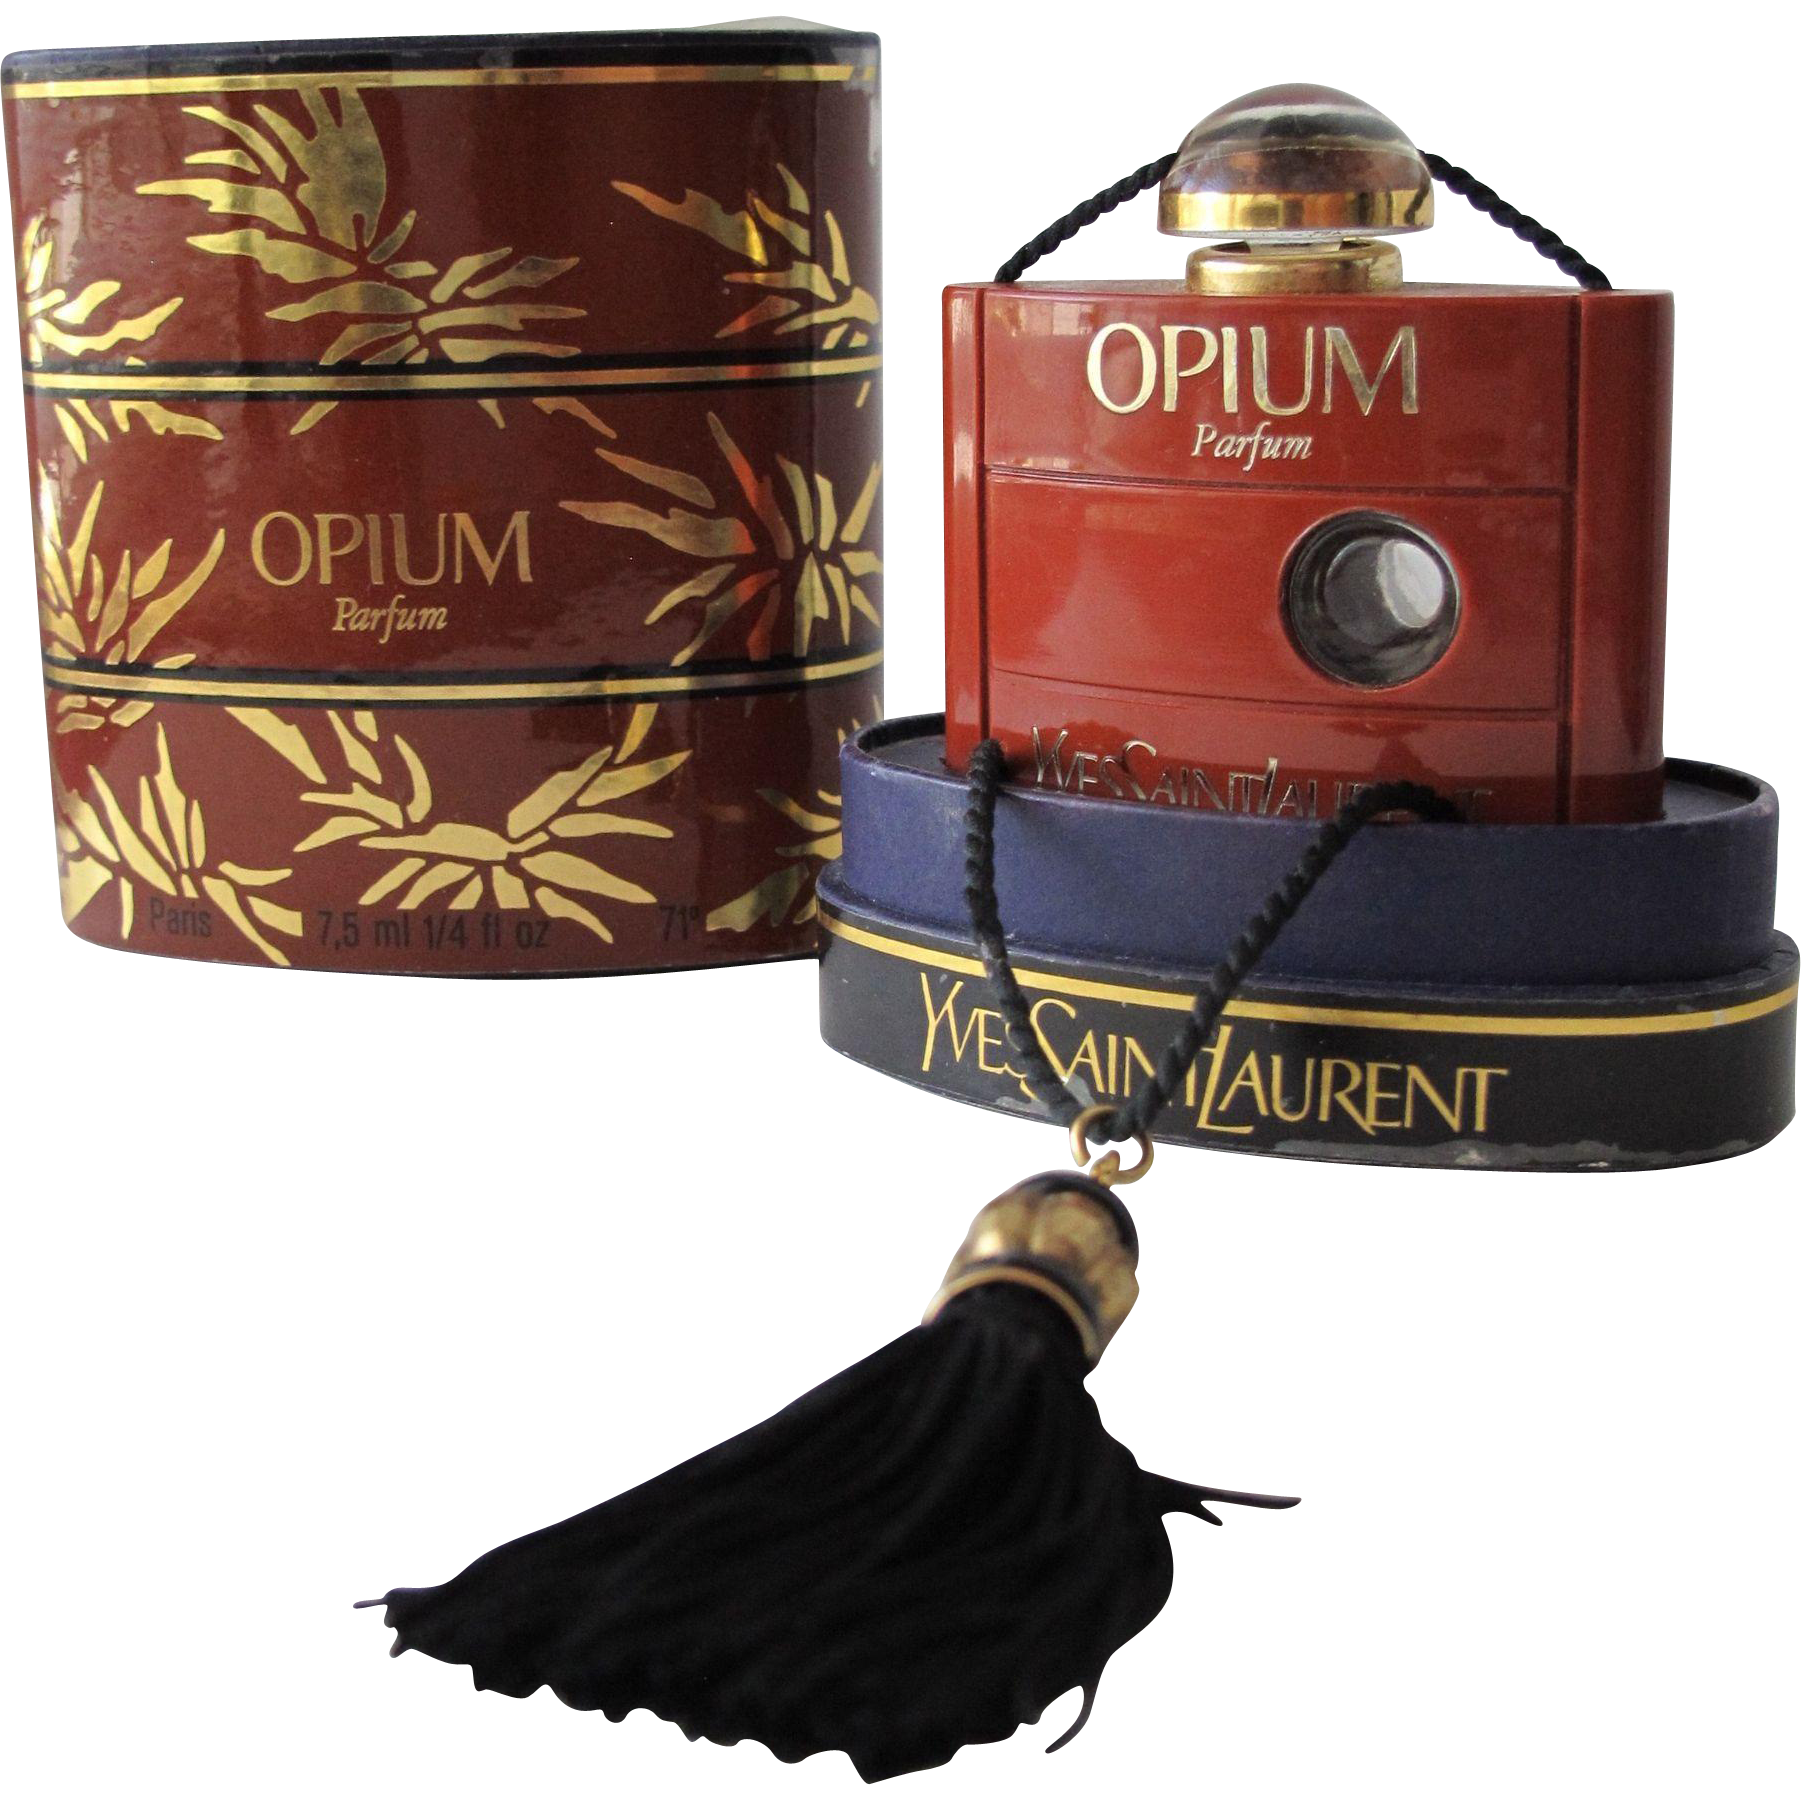 Boxed Commercial Perfume Bottle Opium Parfum by Yves Saint Laurent 1977